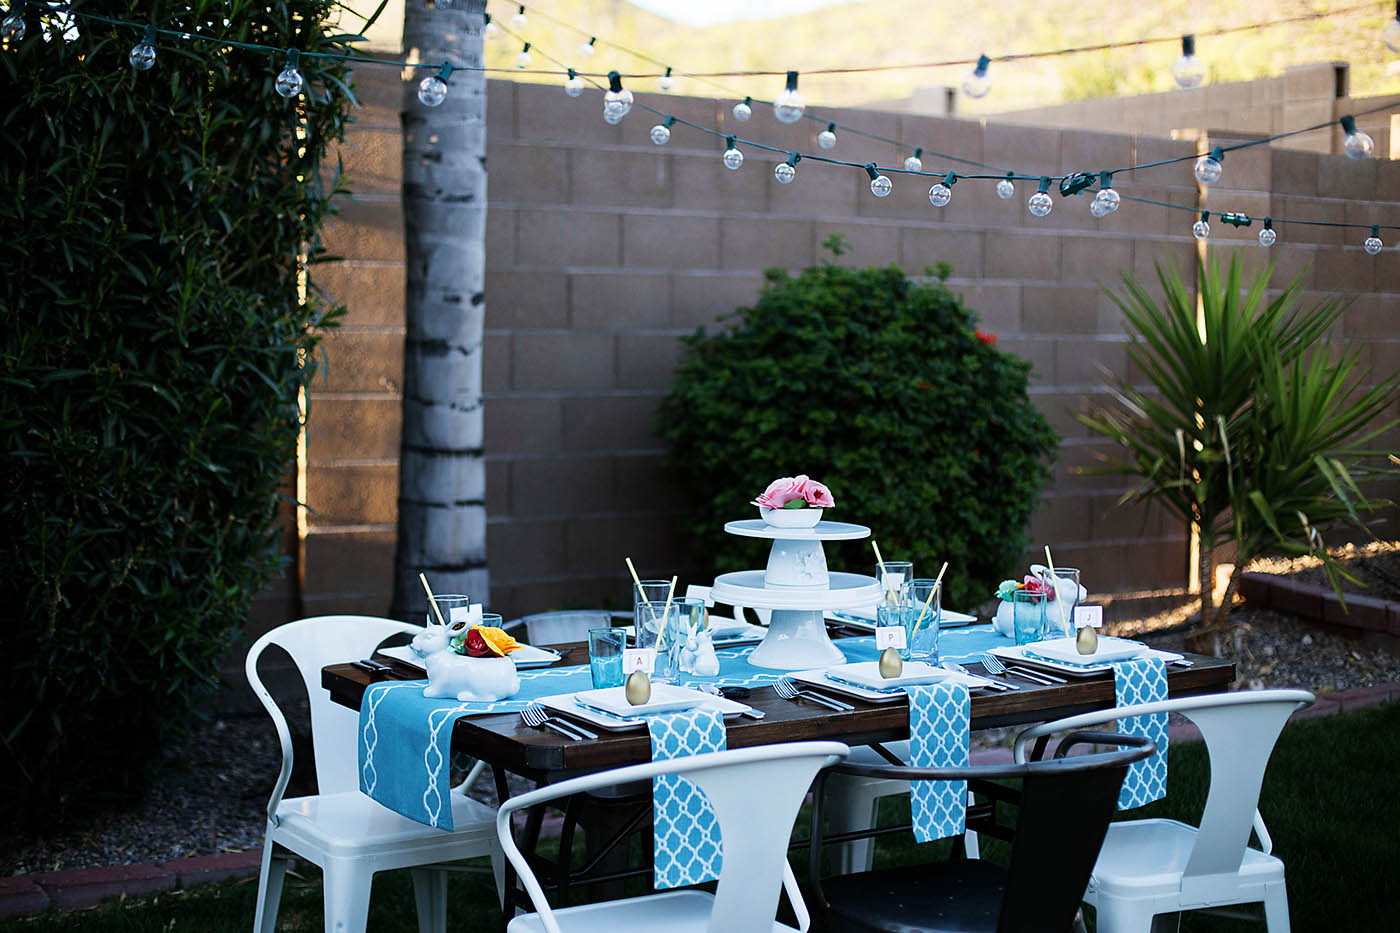 Outdoor Easter dinner party from All for the Memories